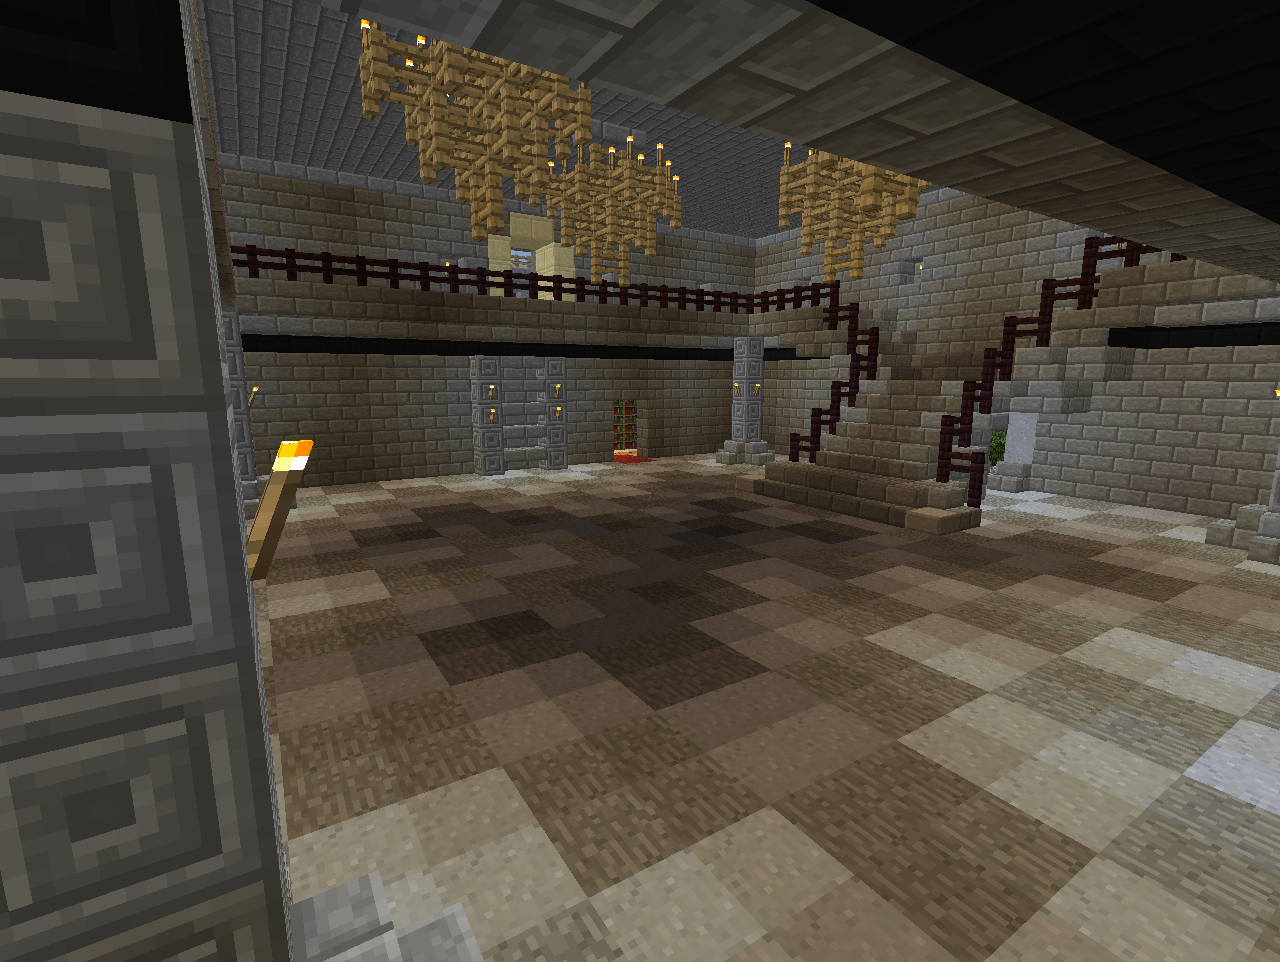 Final fantasy ix sur minecraft page 2 minecraft for Salle a manger minecraft